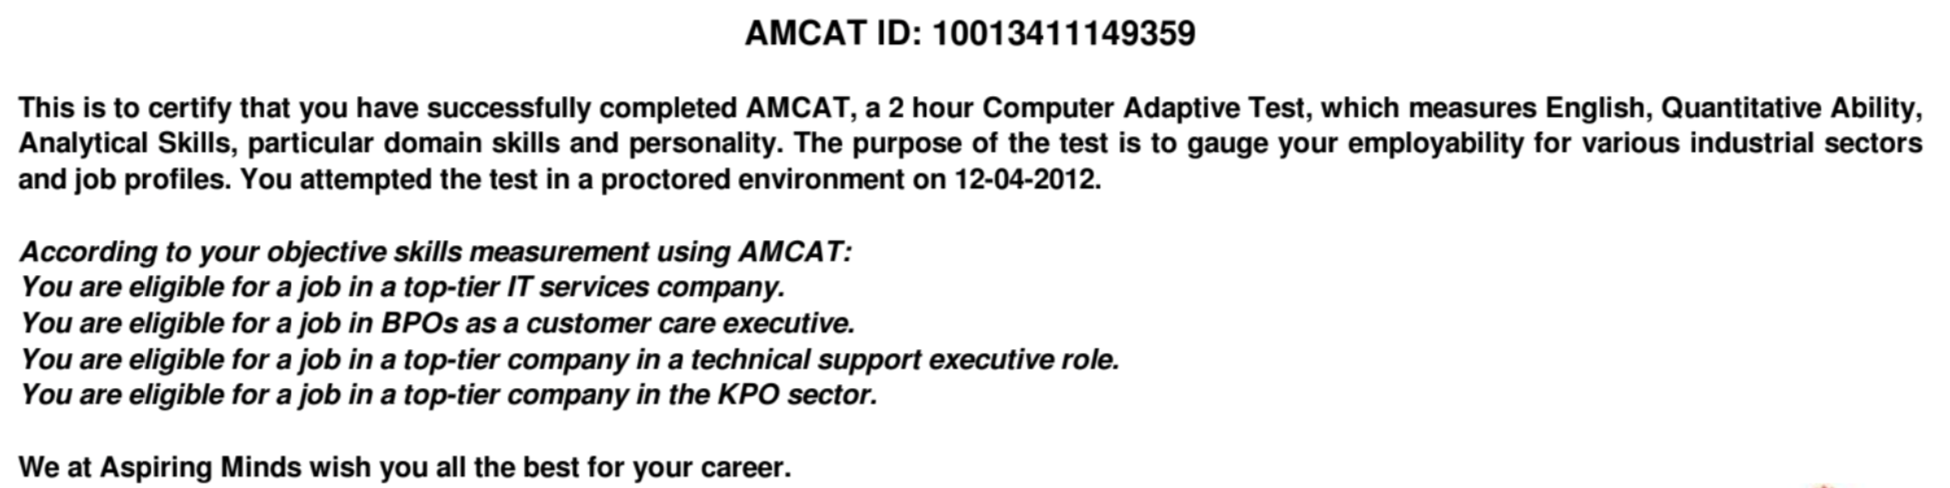 amcat results - eligibility report